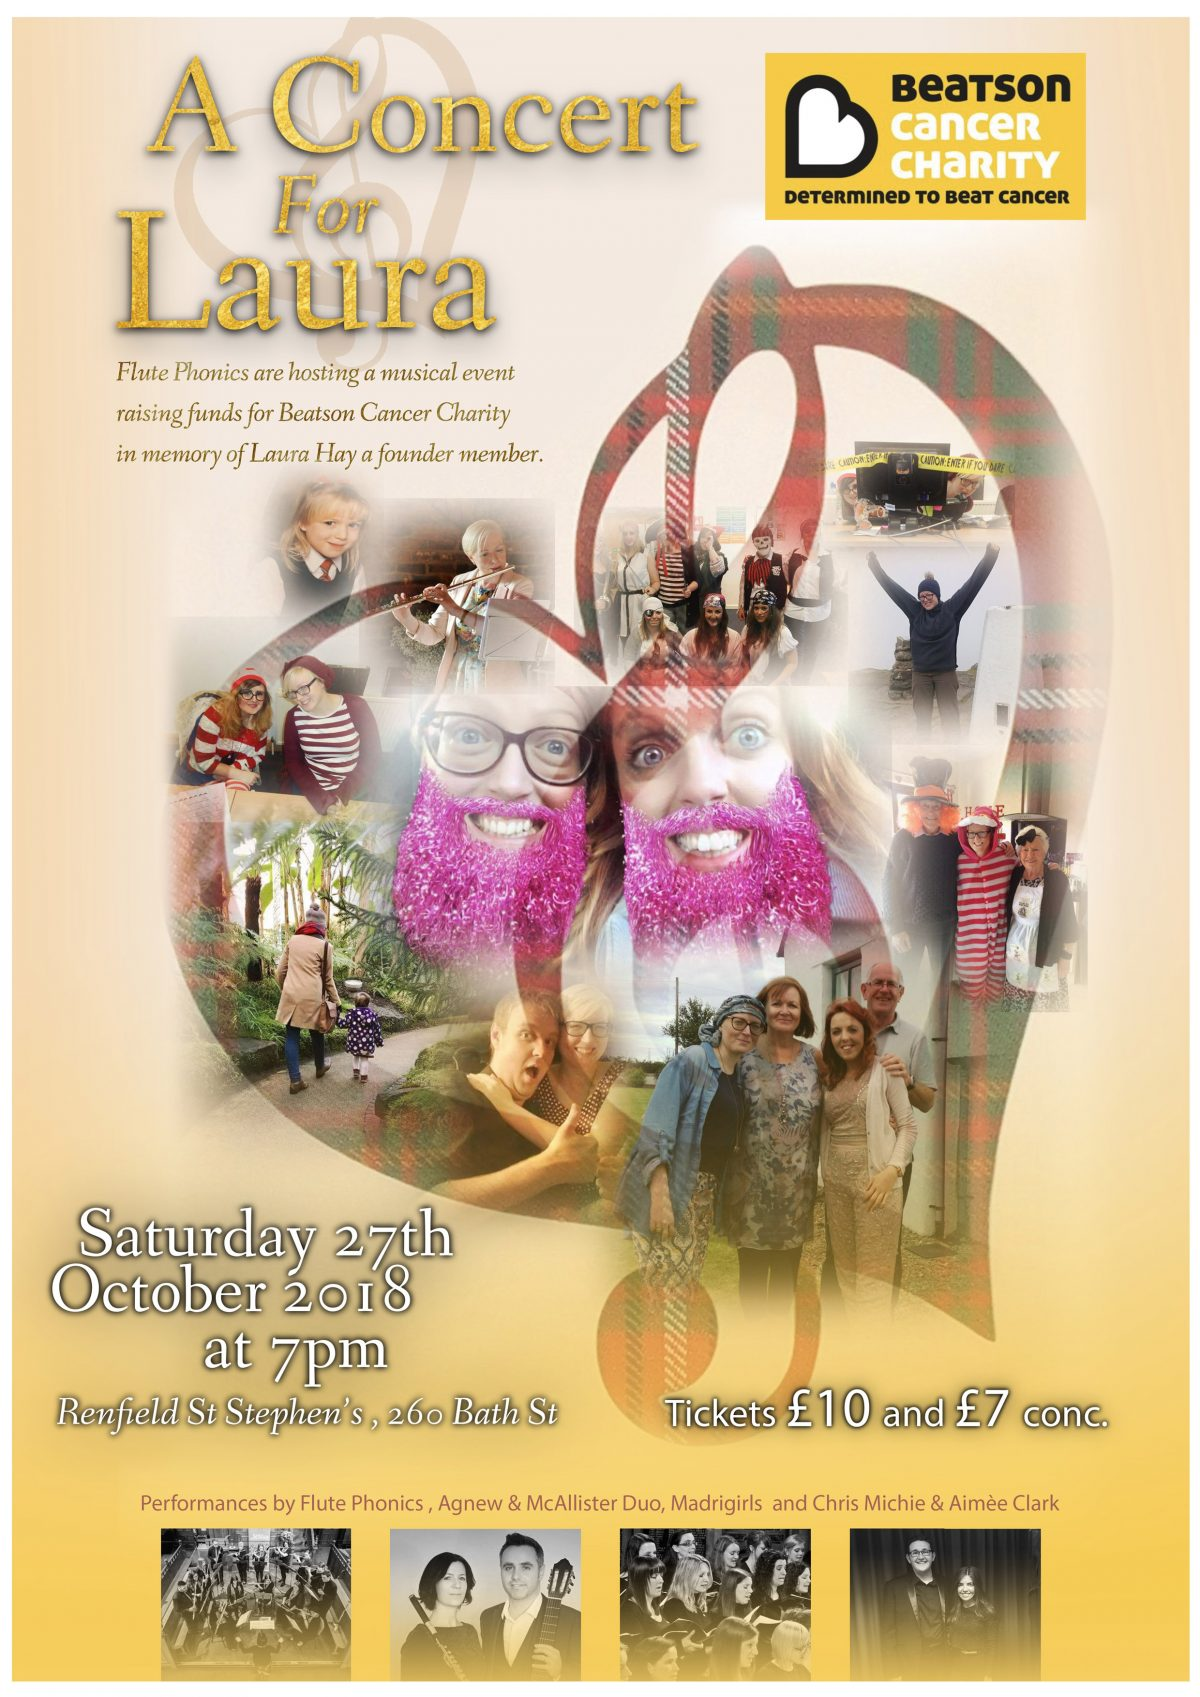 A Concert for Laura